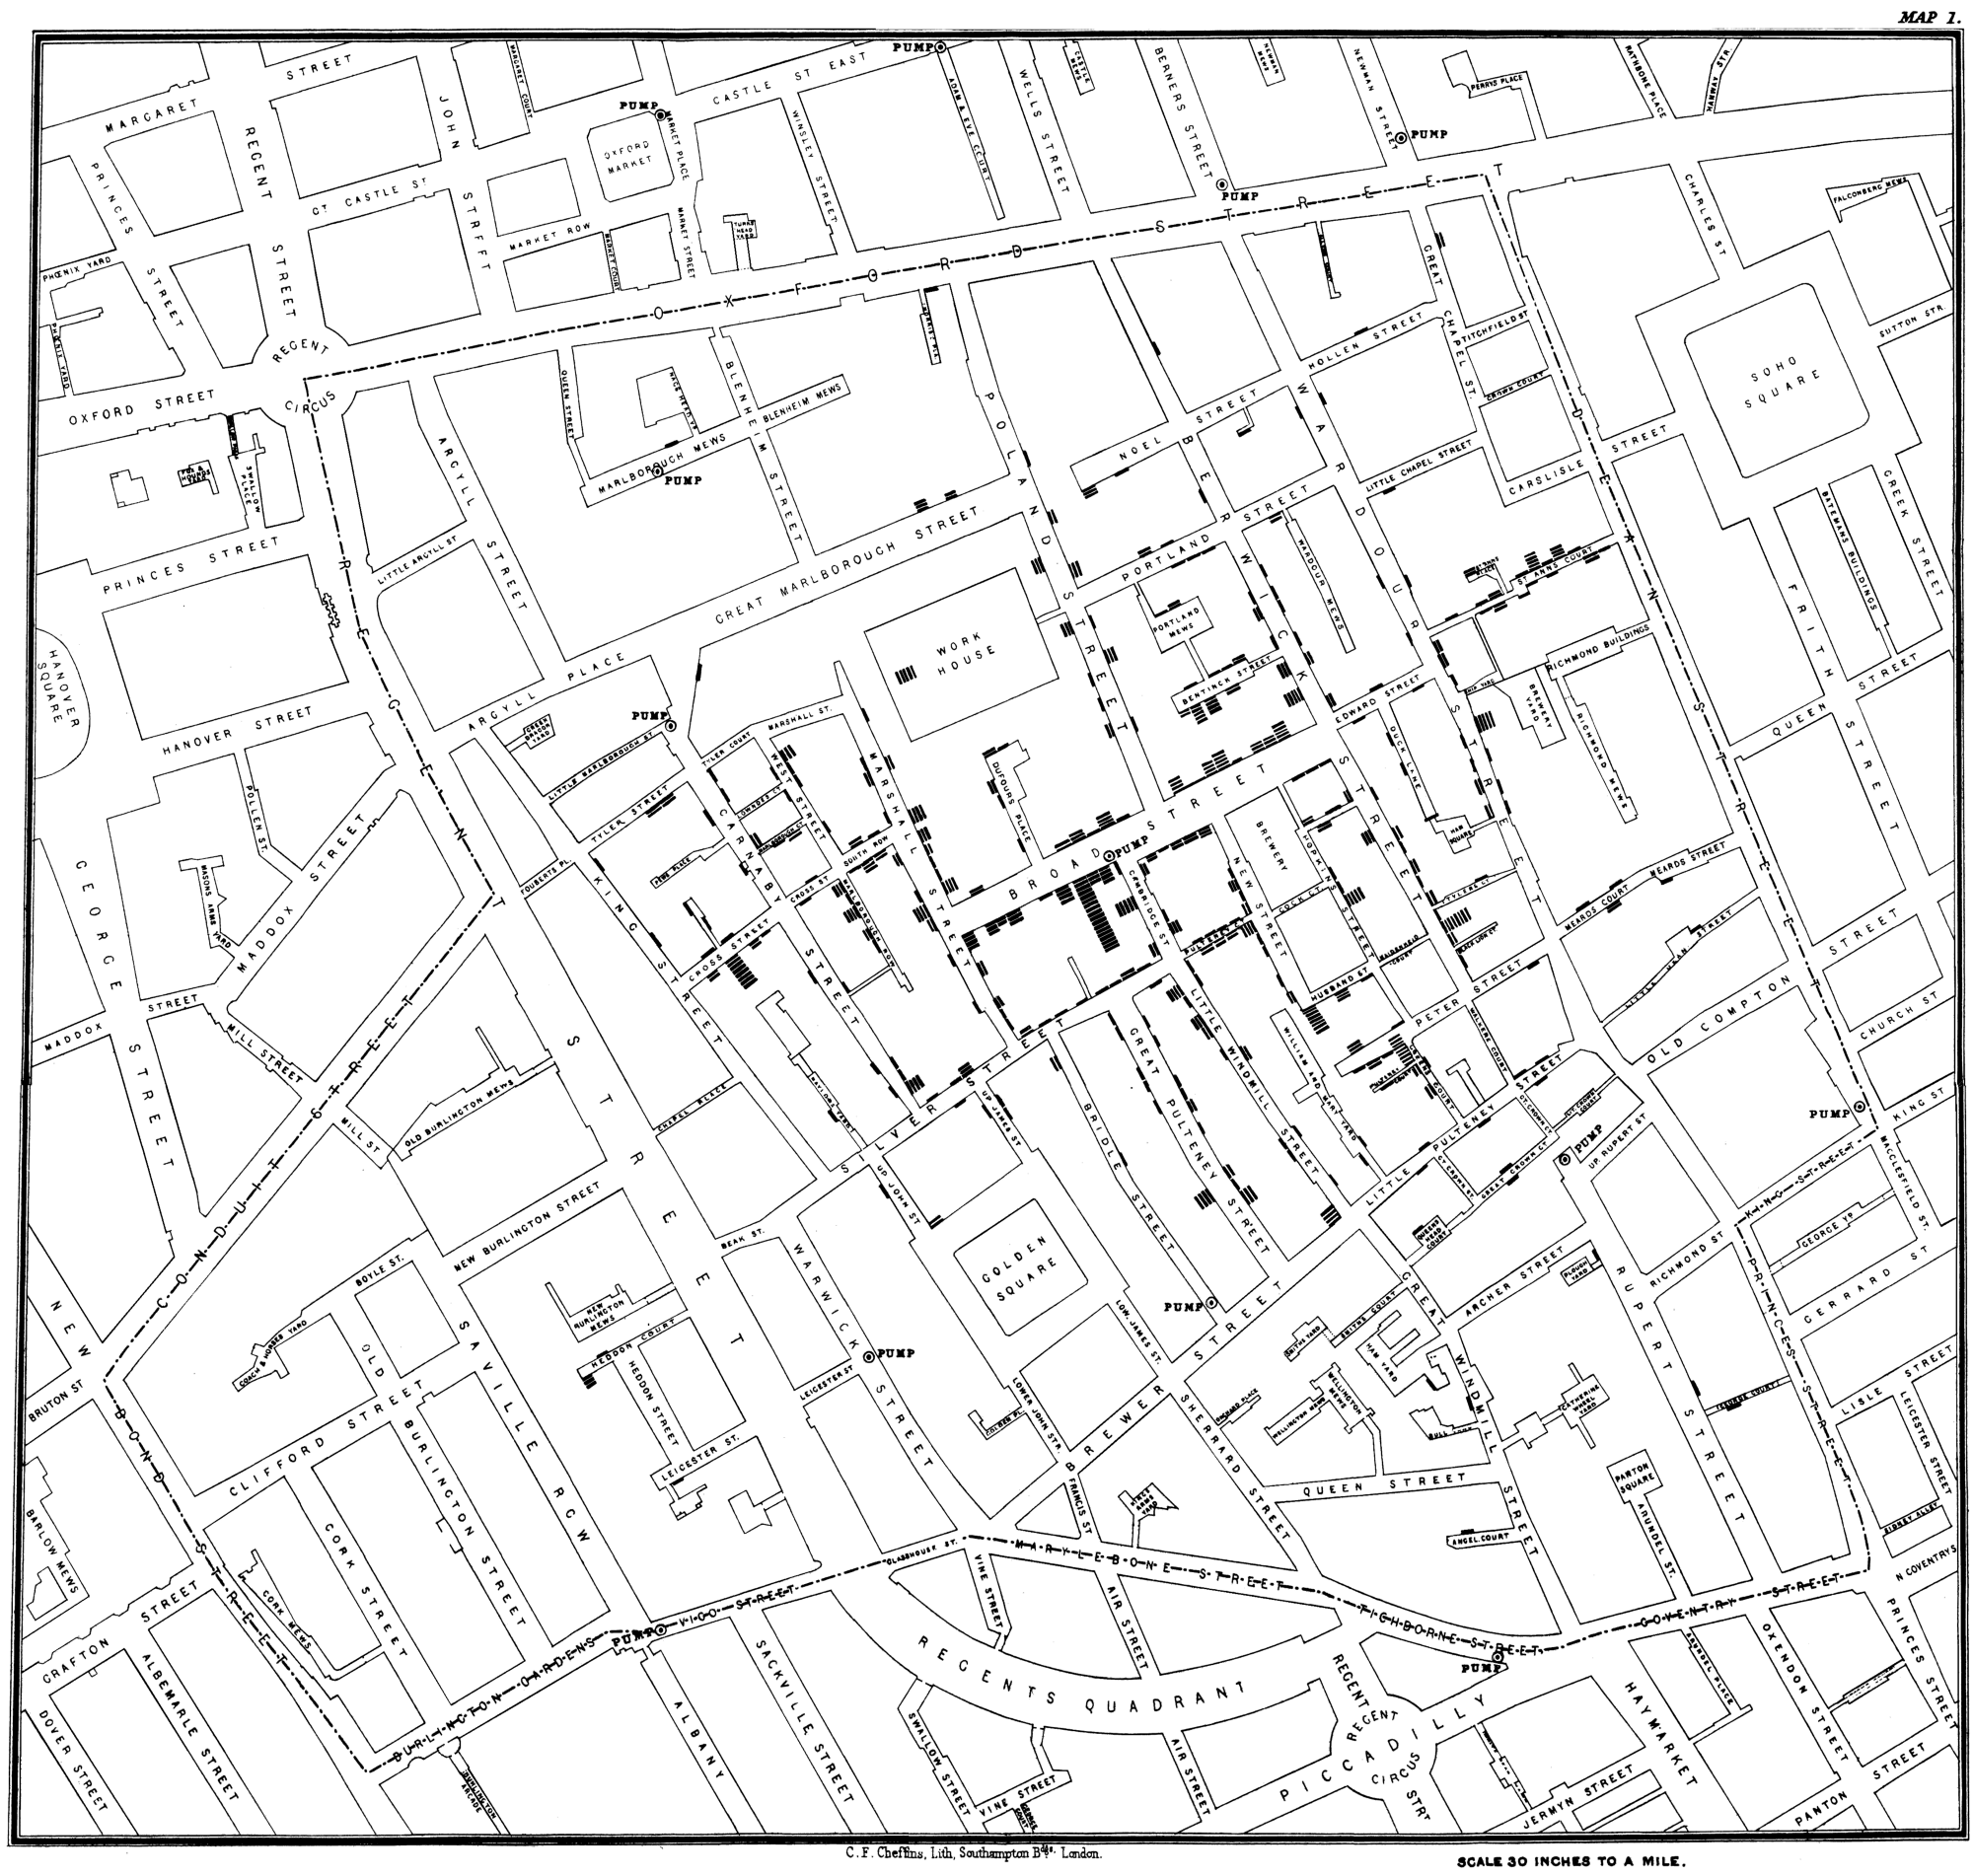 Snow's 1854 map London's public wells and cholera cases